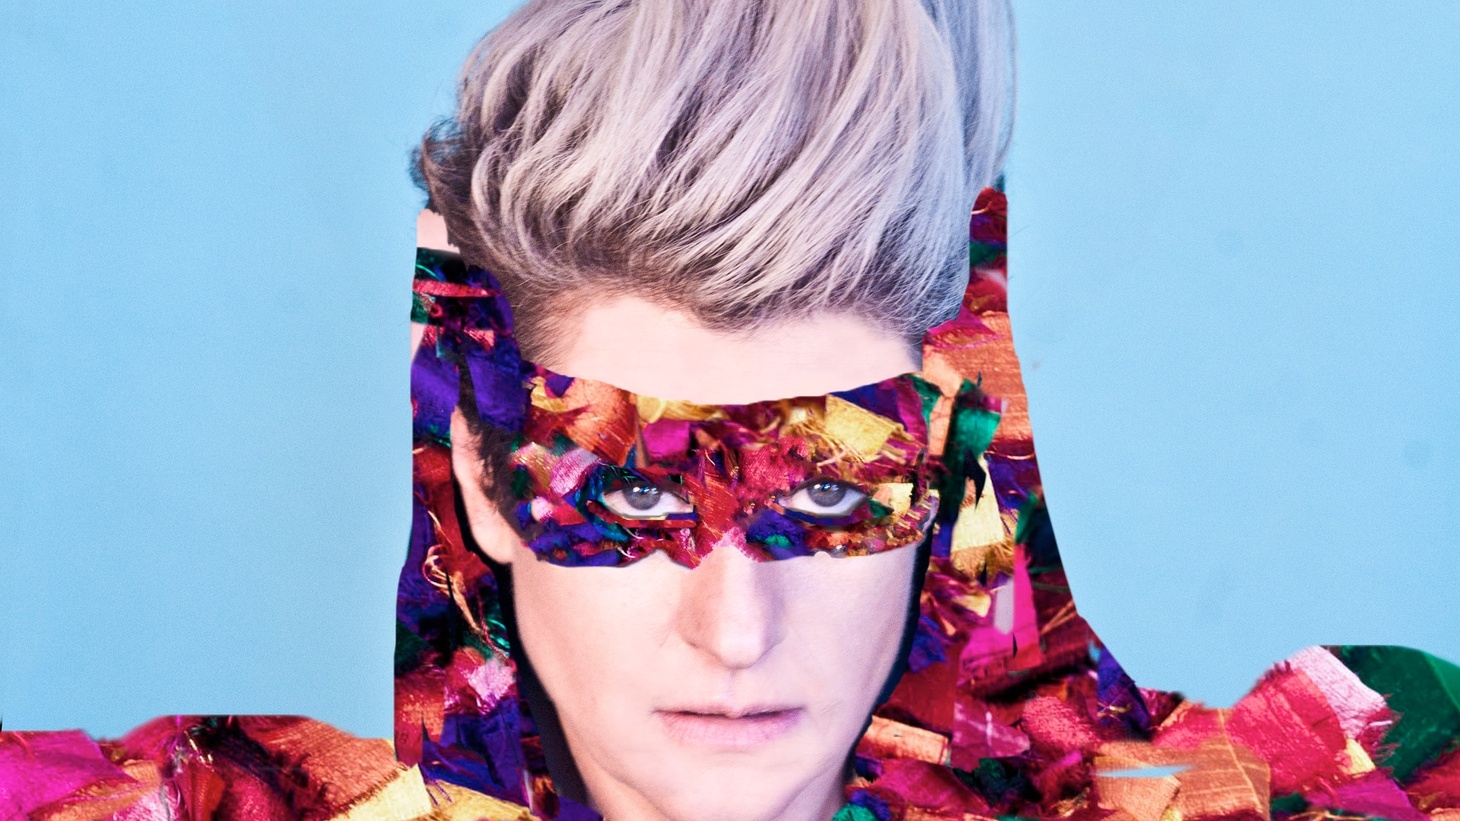 Electro-clash artist and pop culture provocateur Peaches joins us for a Guest DJ set at 10:20am.